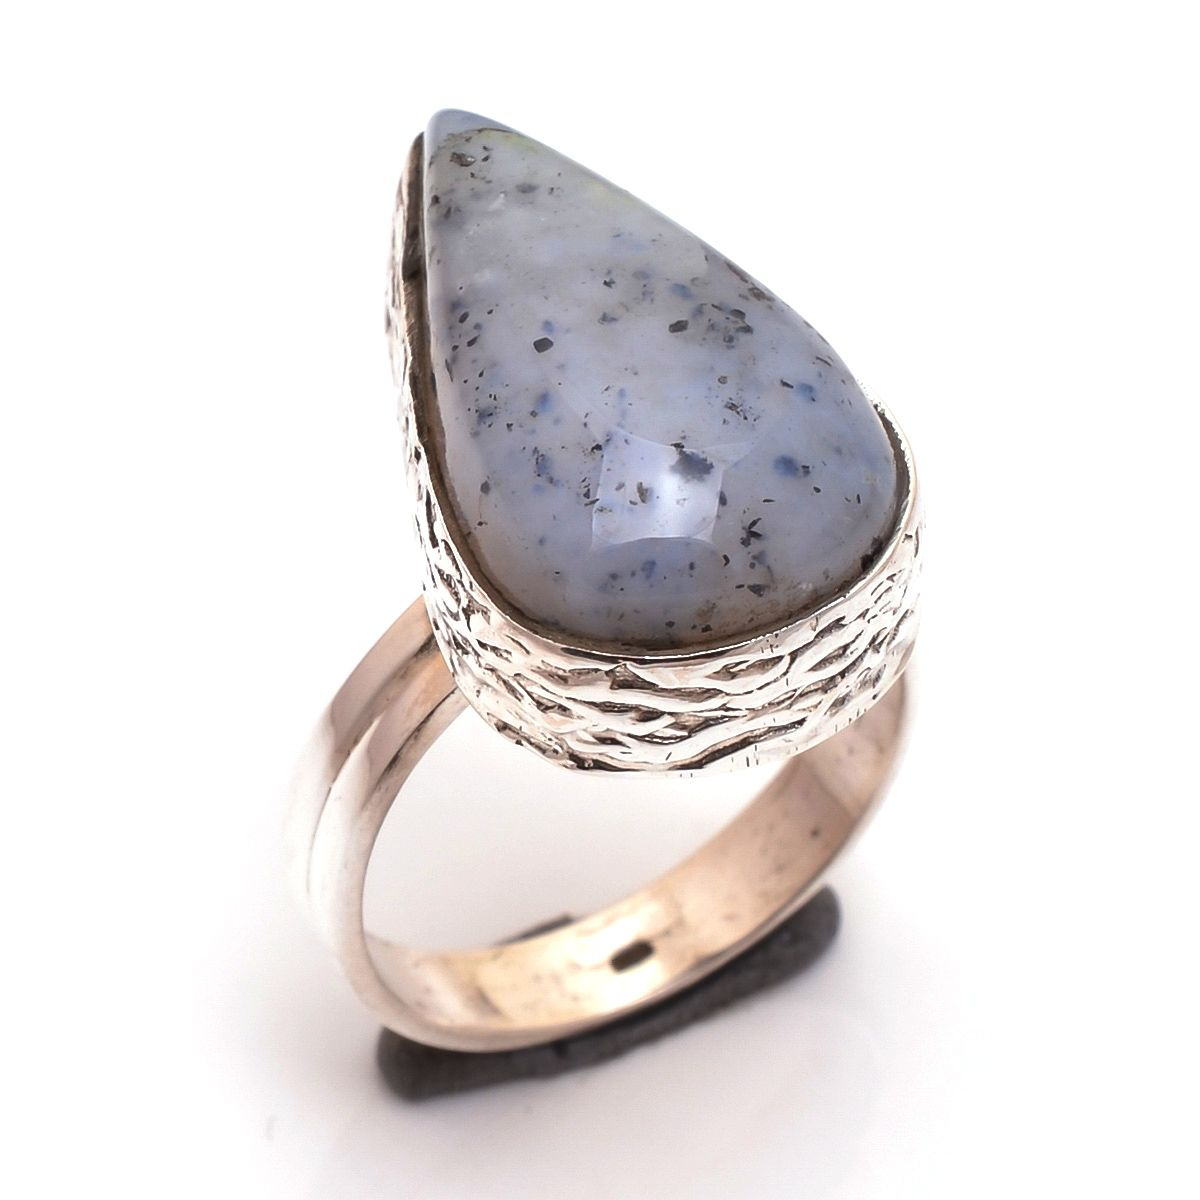 Dendrite Opal Gemstone 925 Sterling Silver Ring Size 7